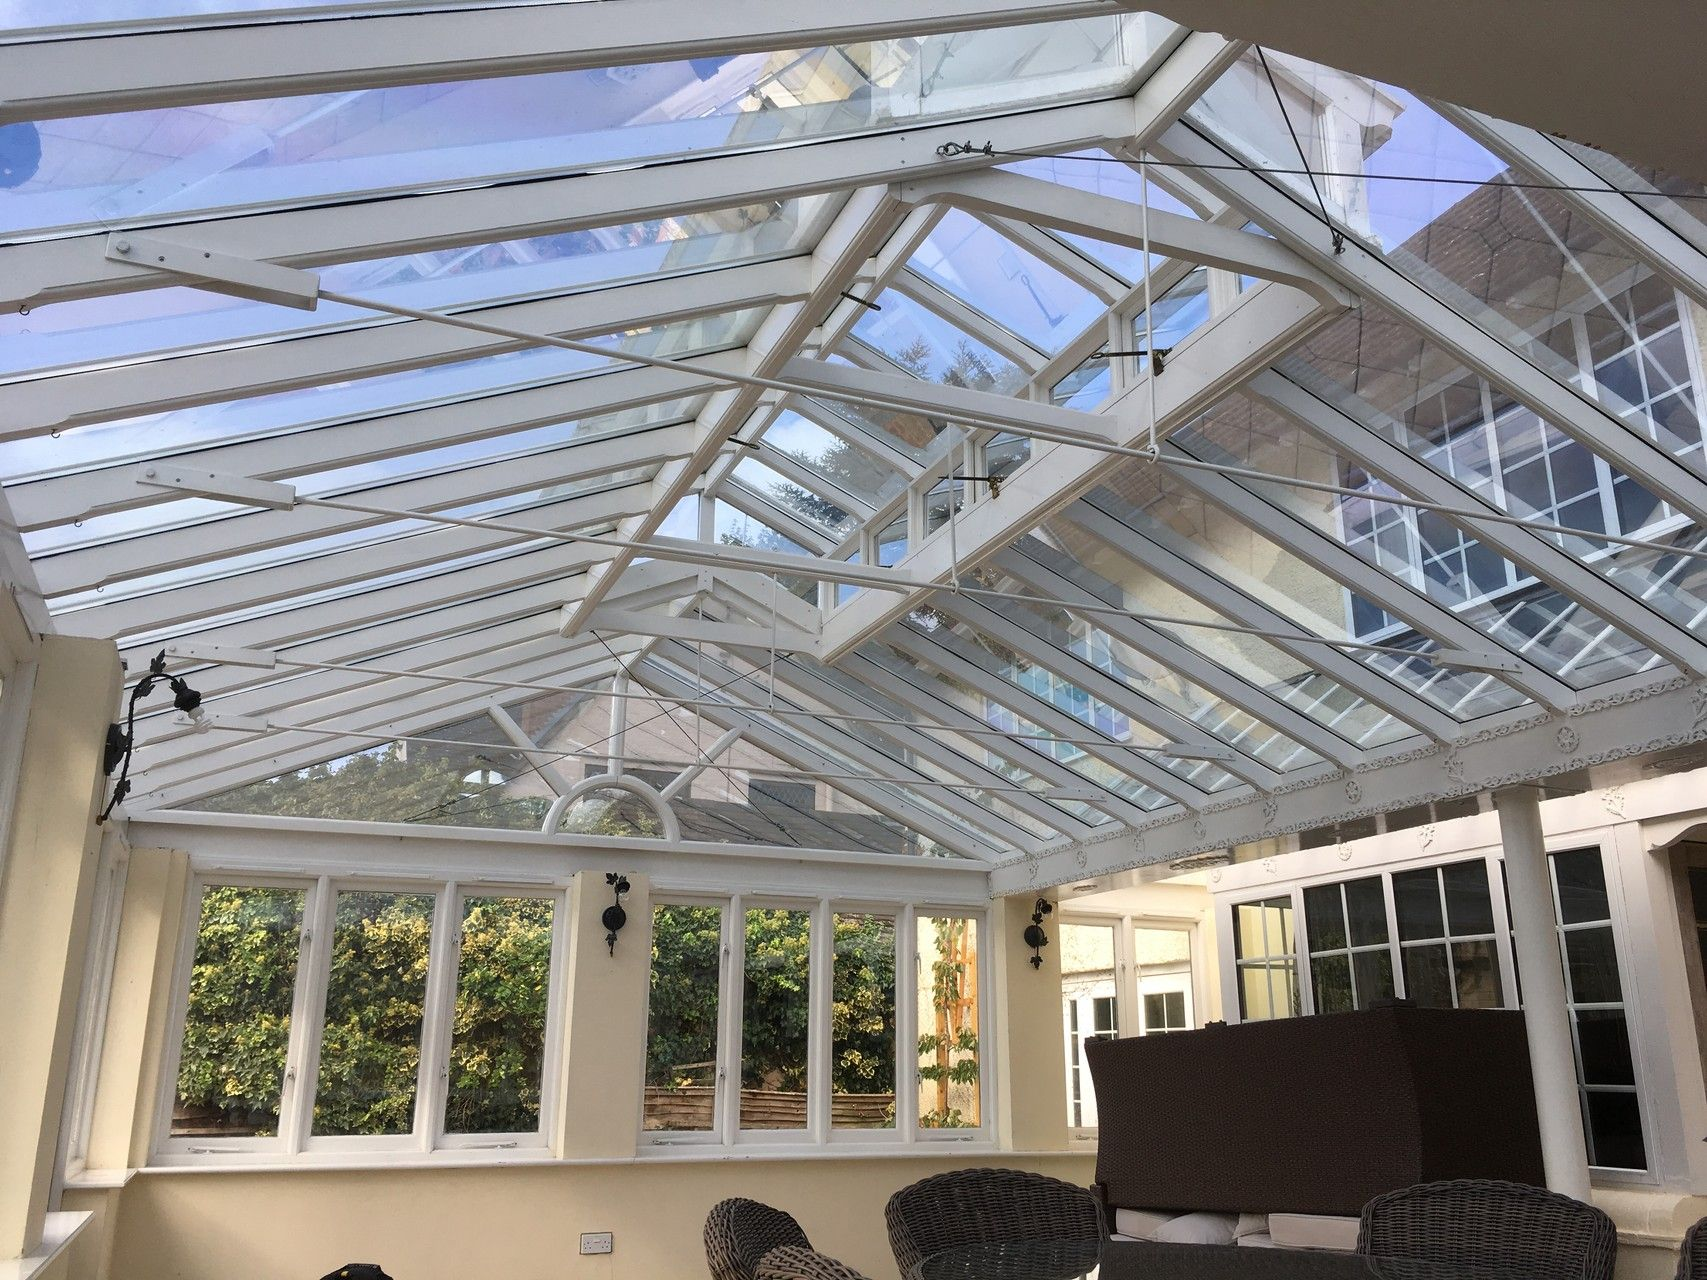 As Well As Effective Solar Control Keeping Your Conservatory Orangery Or Summer House Cooler For Longer An Applic Window Film Conservatory Roof Summer House